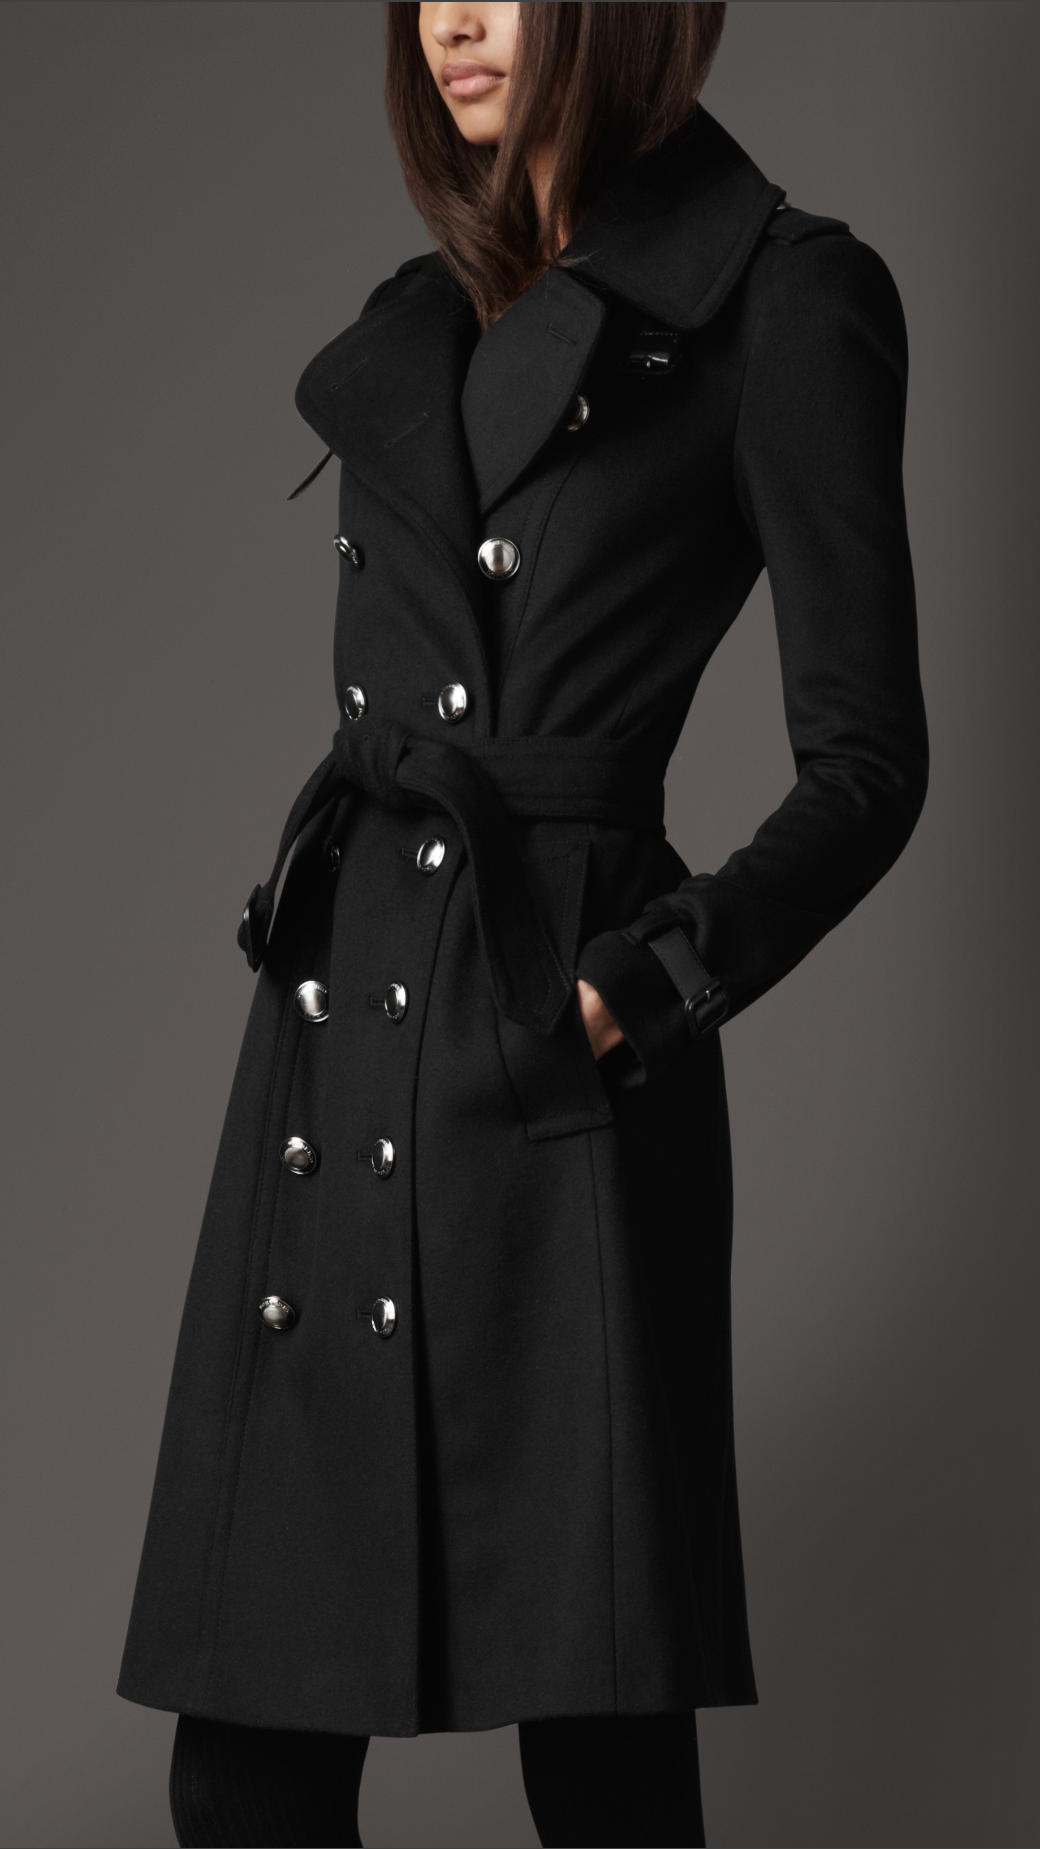 Burberry Long Wool and Cashmere Blend Trench Coat in Black | Lyst